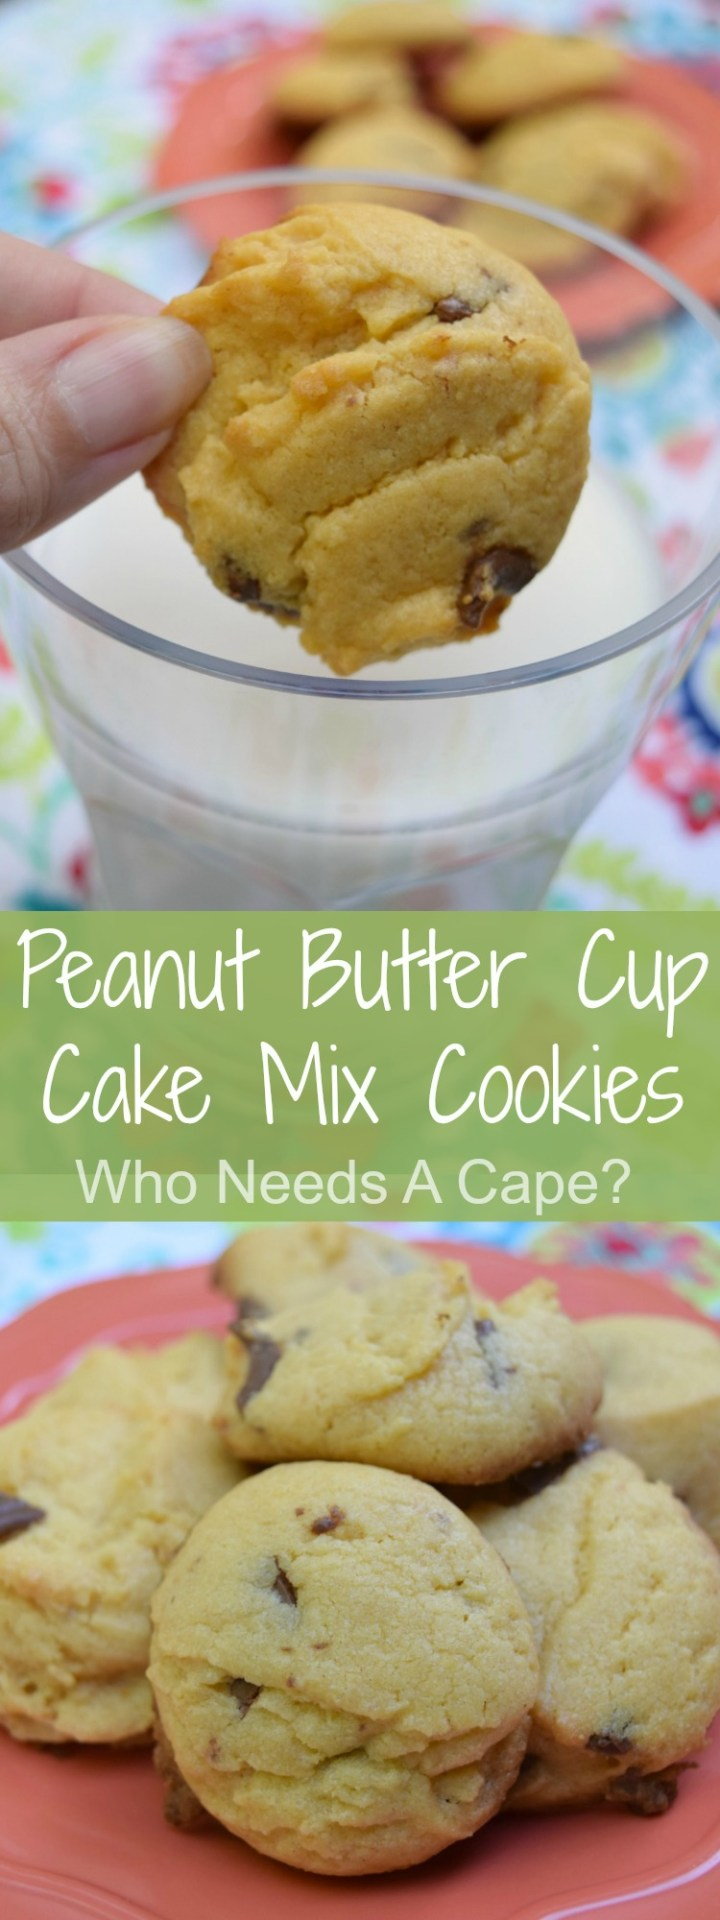 If you need a deliciously easy cookie look no further than Peanut Butter Cup Cake Mix Cookies! A snap to prepare with flavors you love.